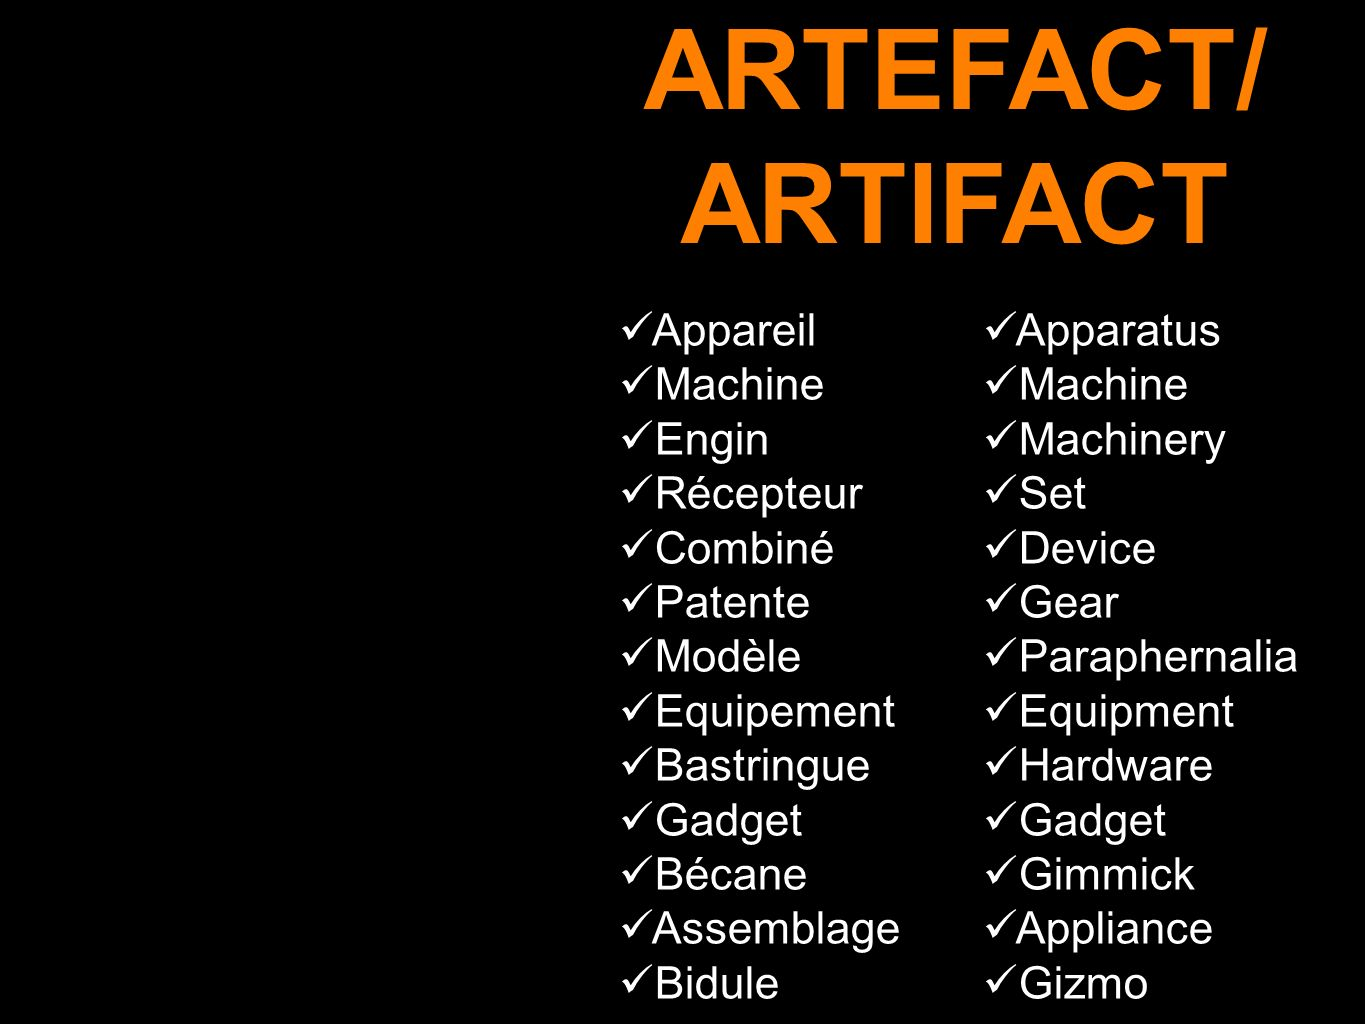 ARTEFACT/ ARTIFACT Appareil Machine Engin Récepteur Combiné Patente